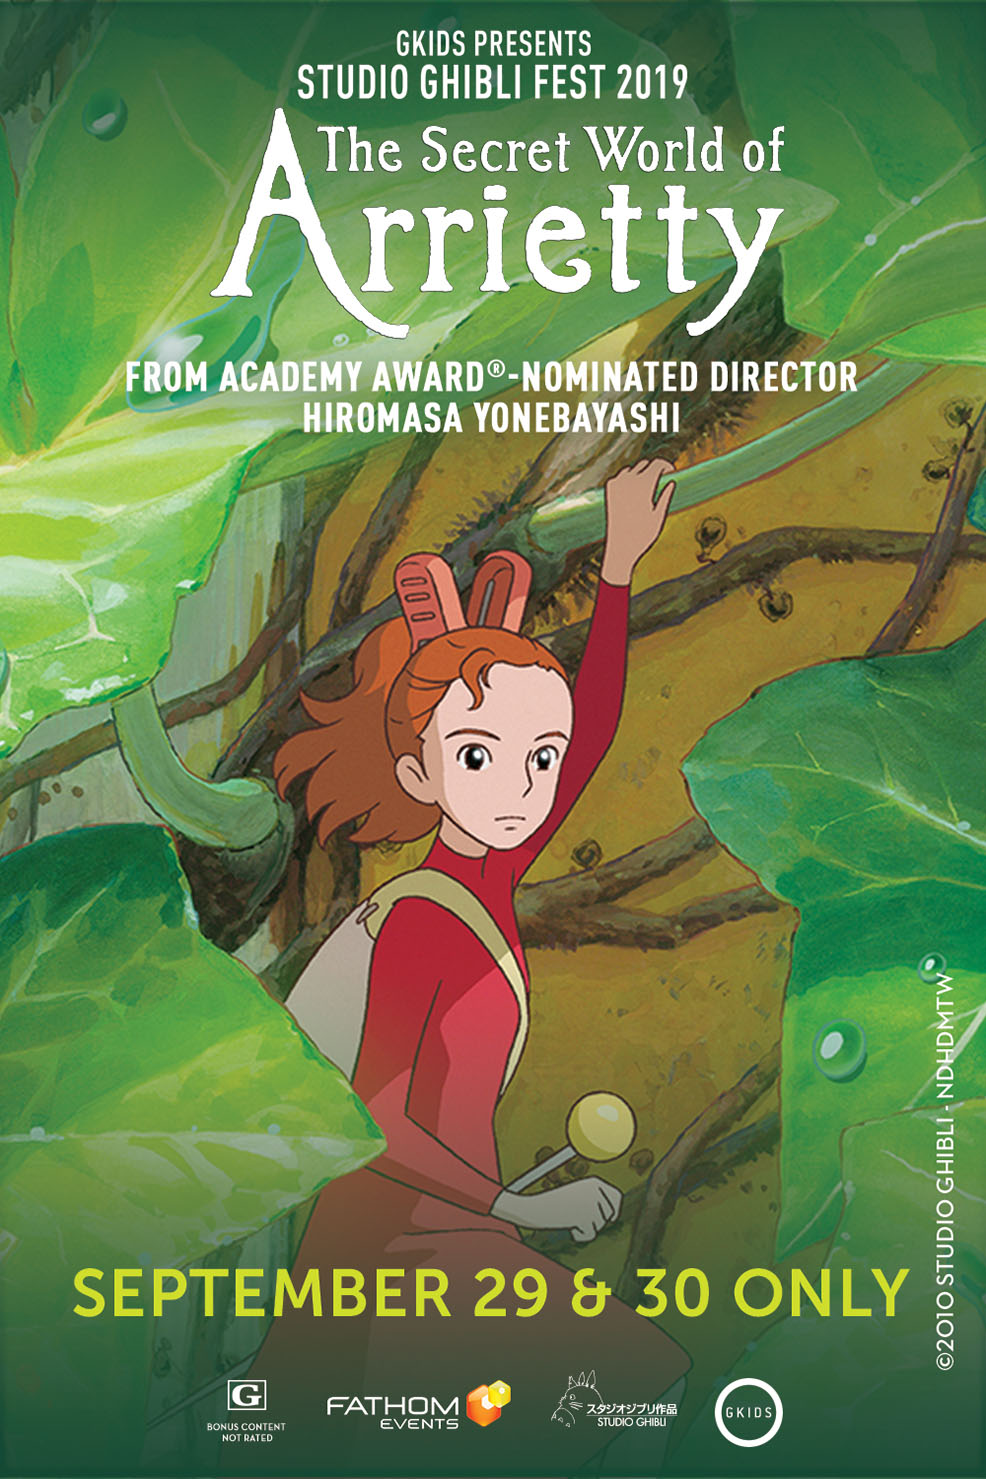 The Secret World of Arrietty - Studio Ghibli Fest